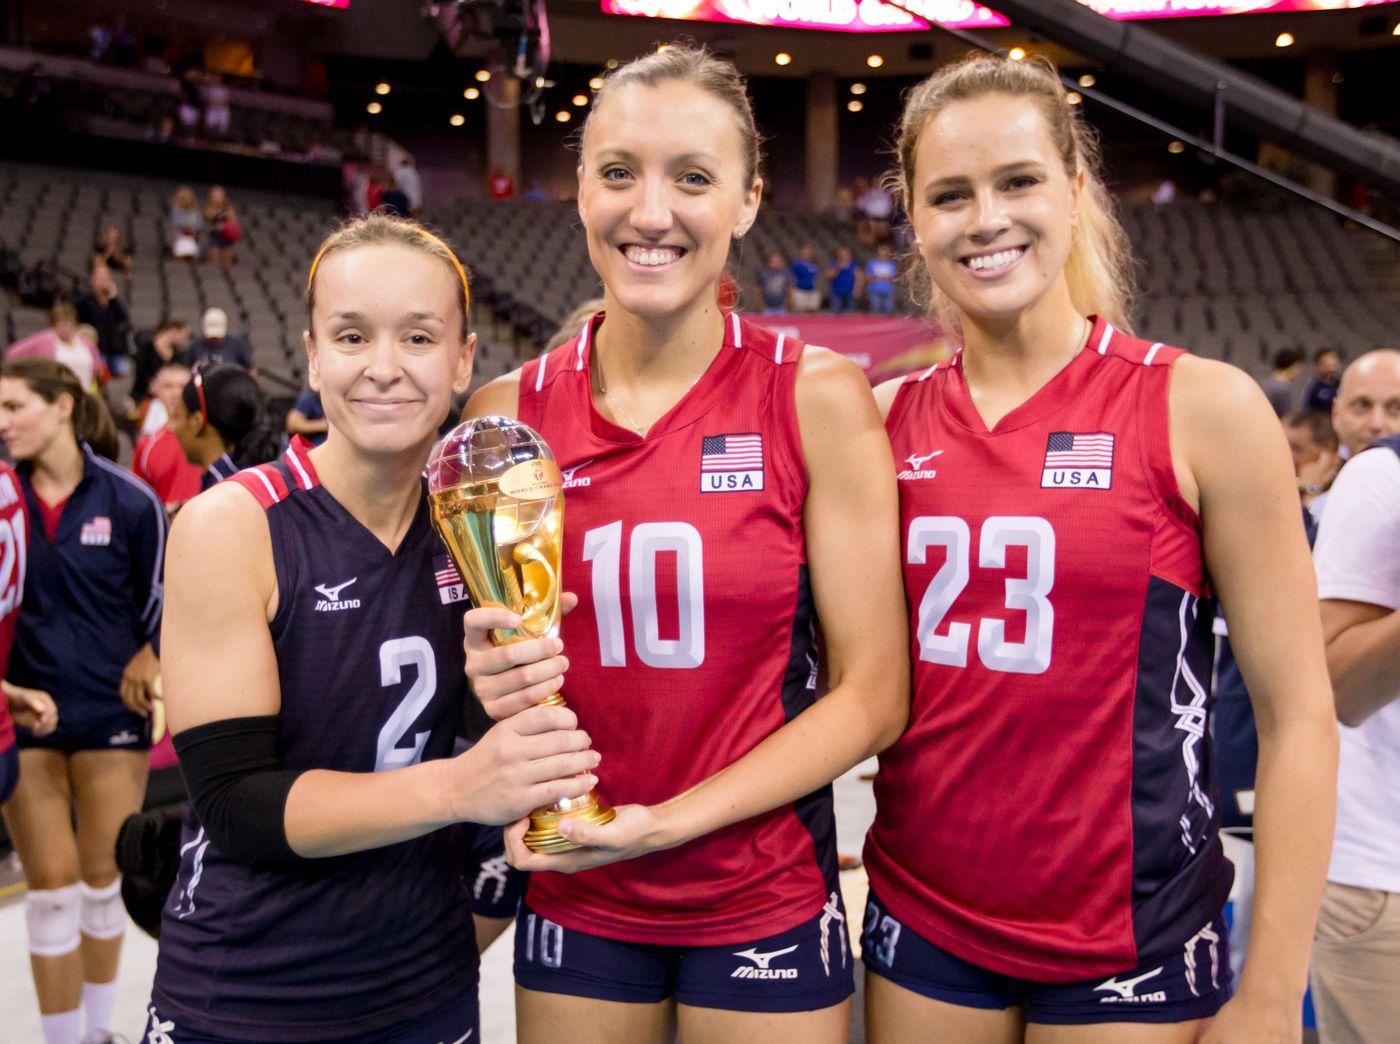 07 26 2015 Fivb World Grand Prix Finals Last Day Usa Volleyball Team Female Volleyball Players Usa Volleyball